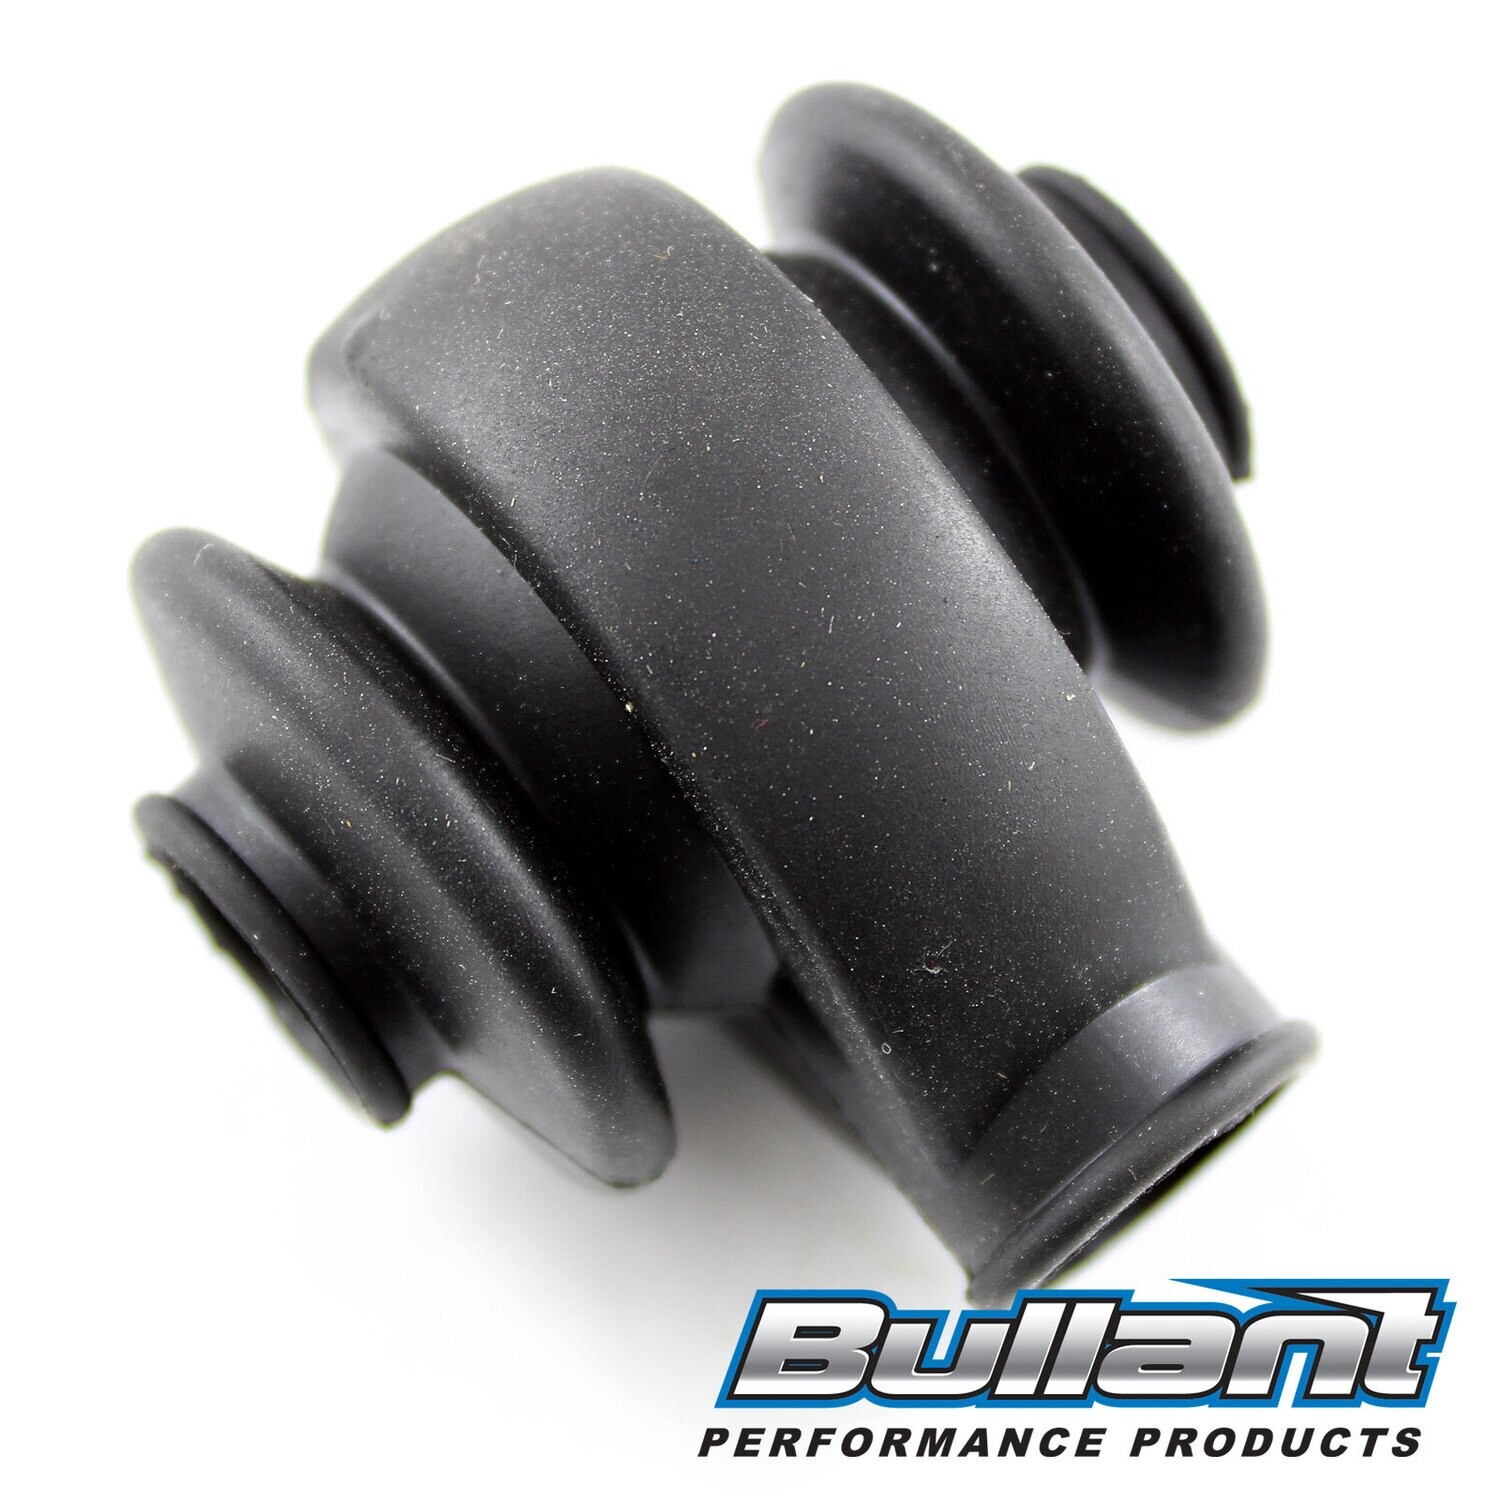 Rod End Dust Boot for 5/8